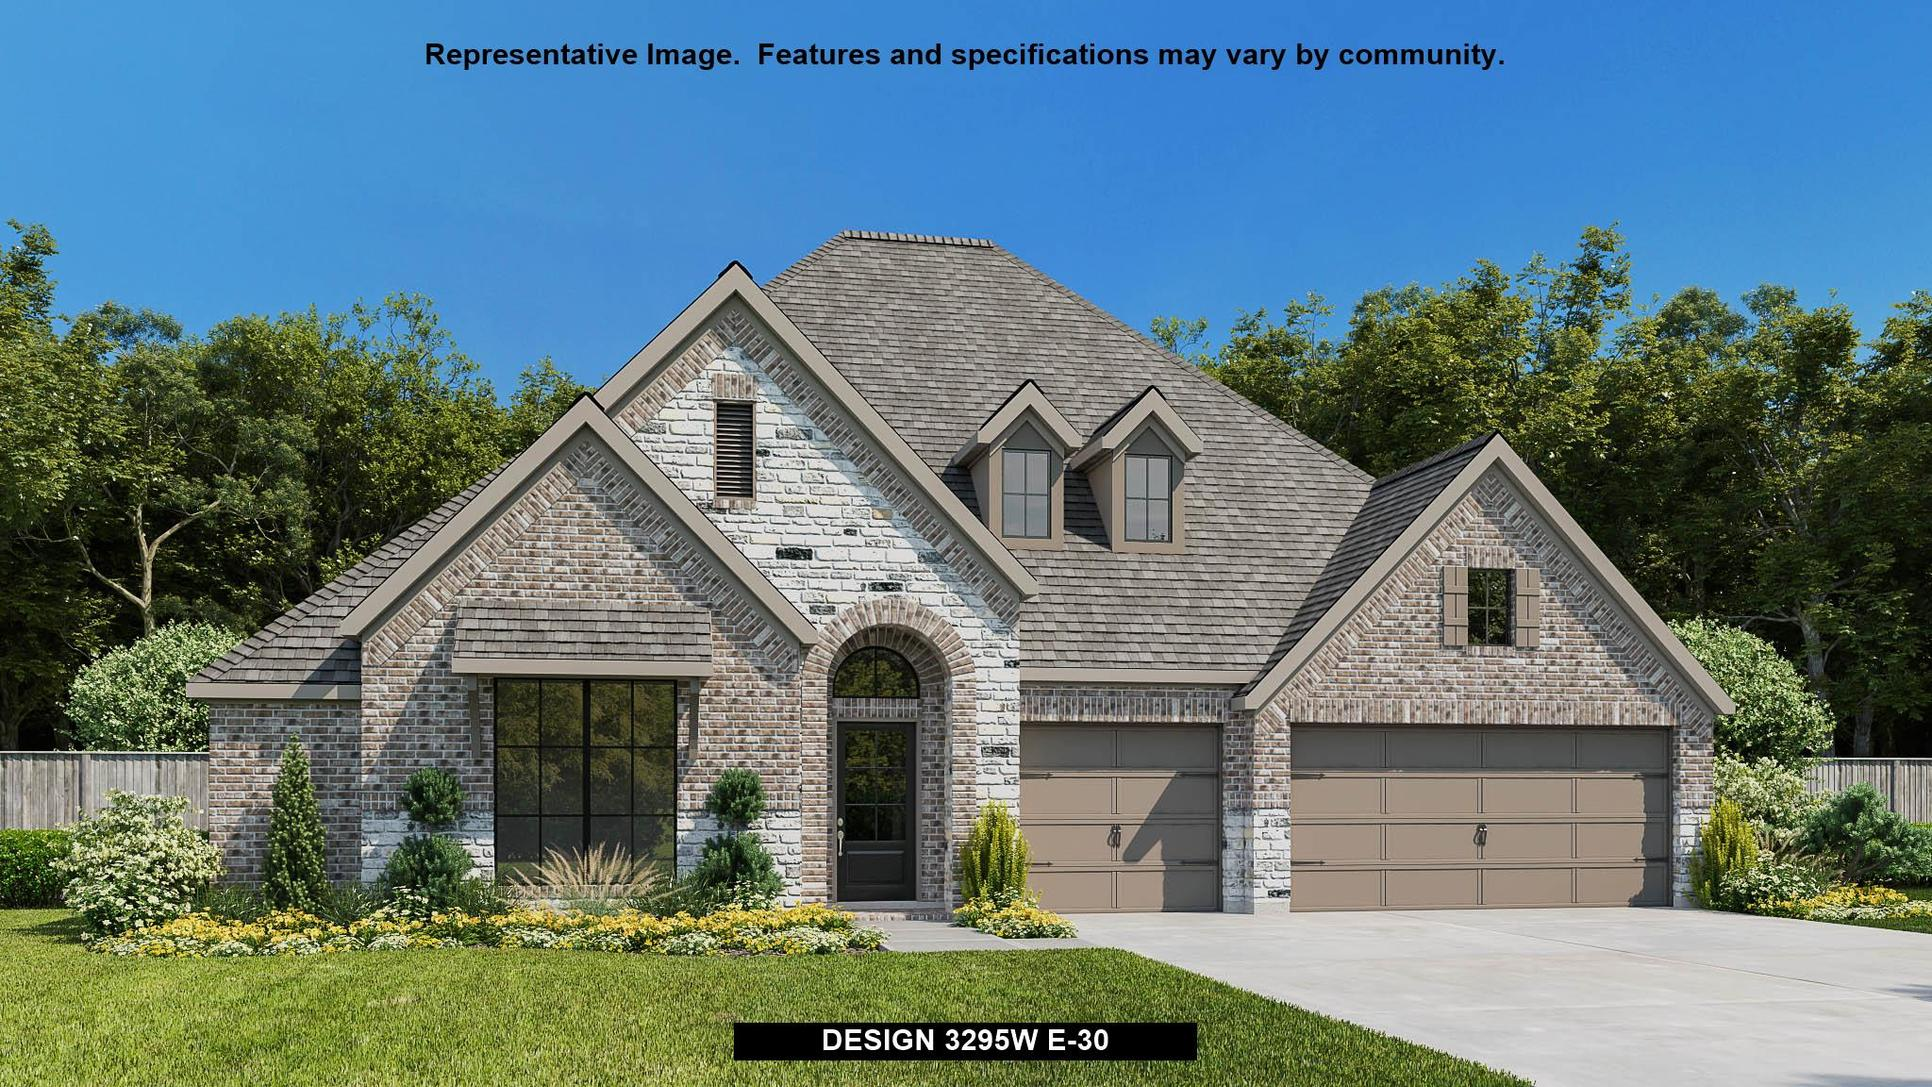 Plan 3295W:Representative photo.  Features and specifications may vary by community.